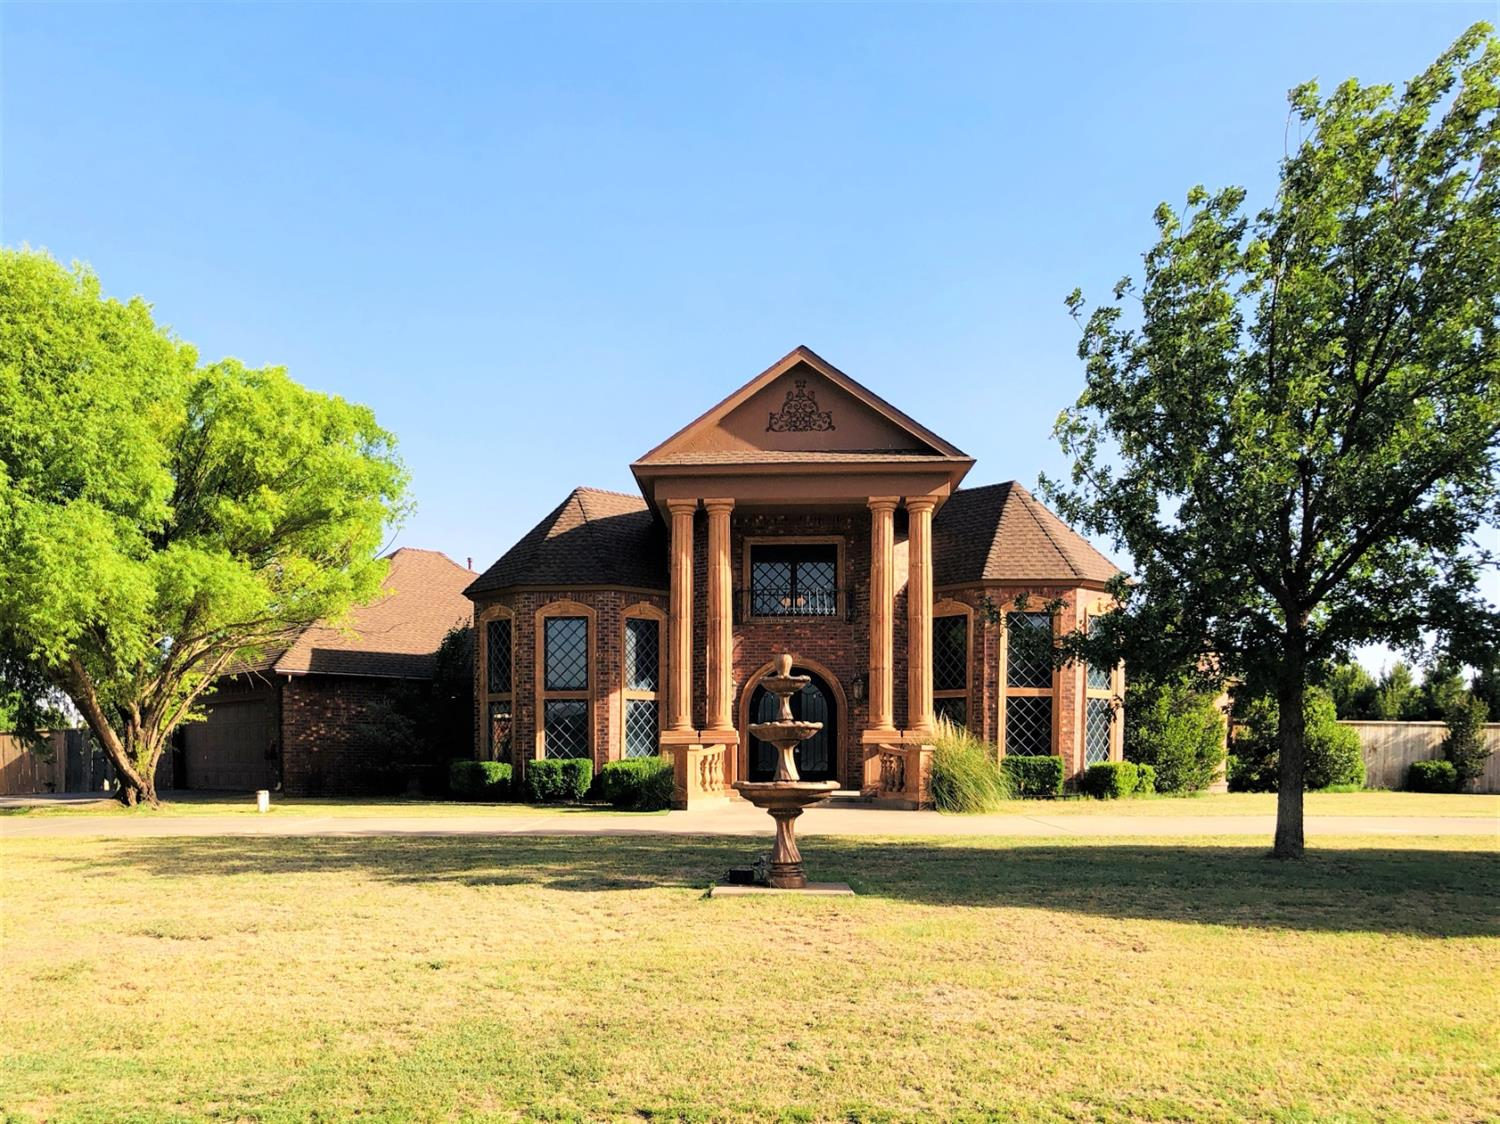 4/4.5/3 on 1 acre in beautiful Llano Estates!  Living room features fireplace, built-ins and lots of windows overlooking the backyard, Kitchen offers granite counter tops and convenient location for entertaining. Spacious dining area, formal dining area, office, basement includes a game room with wetbar and theater room. Isolated master bedroom with separate tub and shower, 2 vanity areas and walk-in closet.  2nd Isolated bedroom downstairs with private bathroom.  2 bedrooms upstairs with private bathrooms, walk-in closets and study area. Large backyard offers plenty of room for a shop and pool.